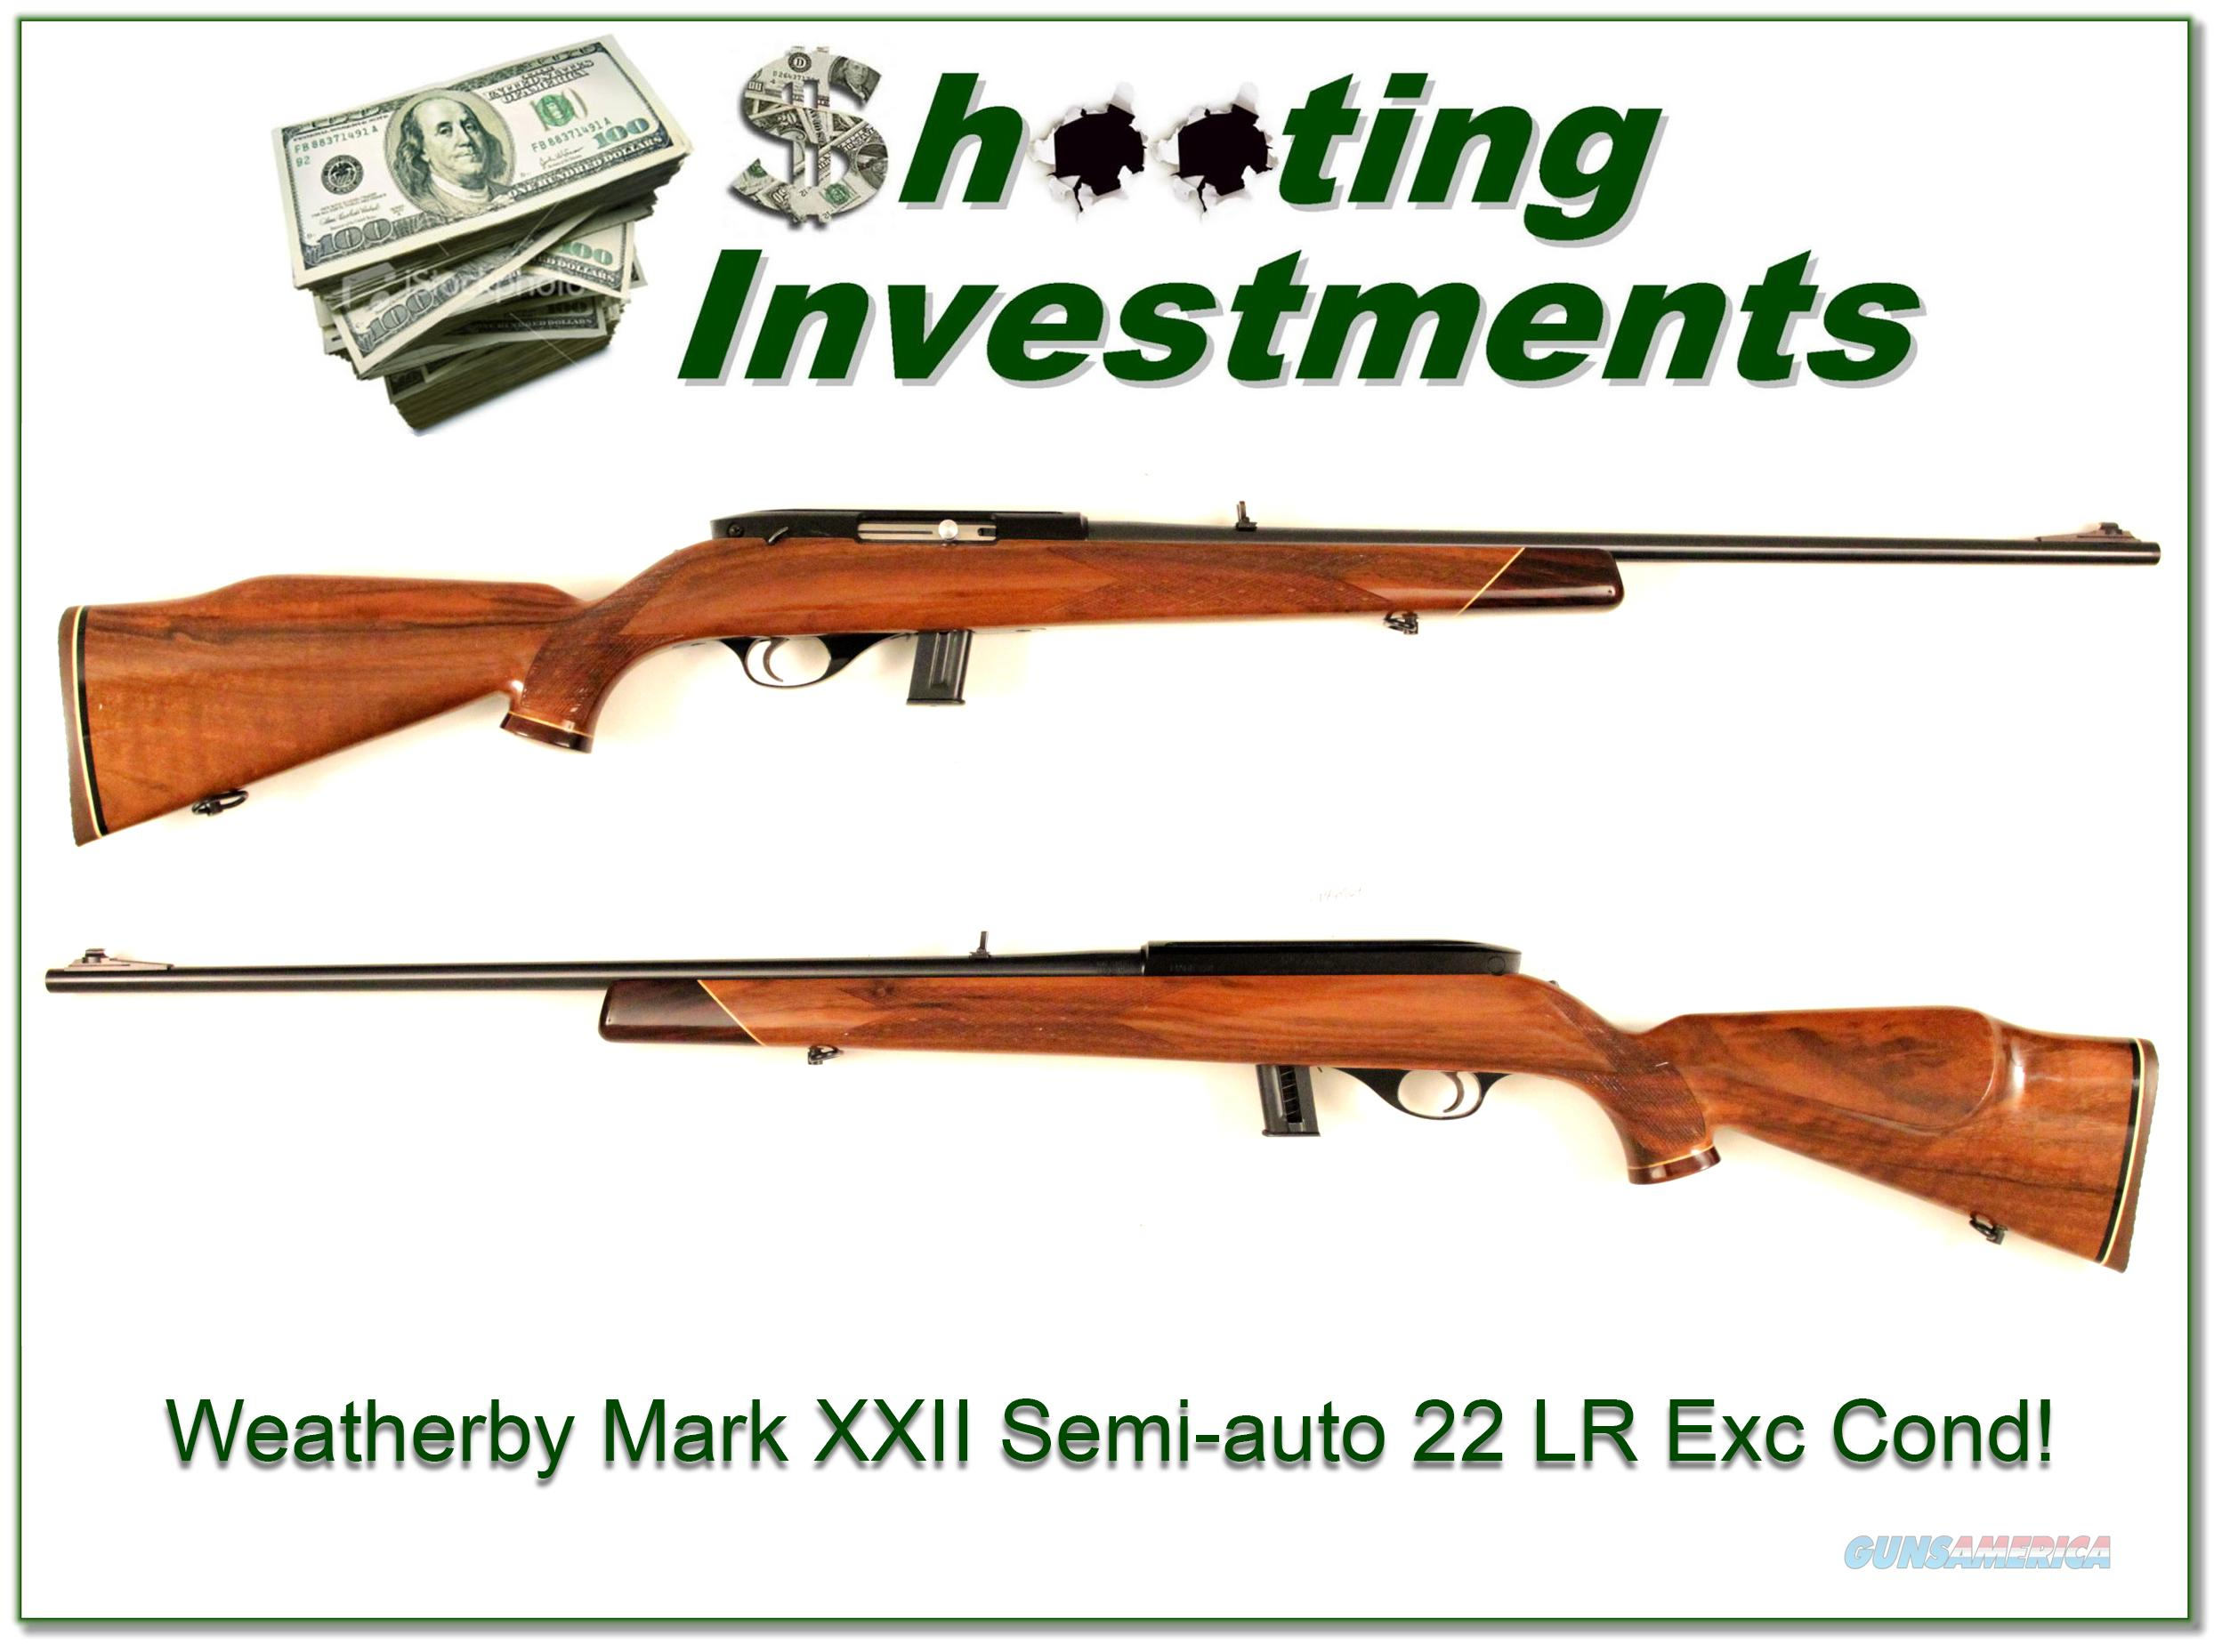 Weatherby Mark XXII 22 rimfire semi-auto Exc Cond!  Guns > Rifles > Weatherby Rifles > Sporting